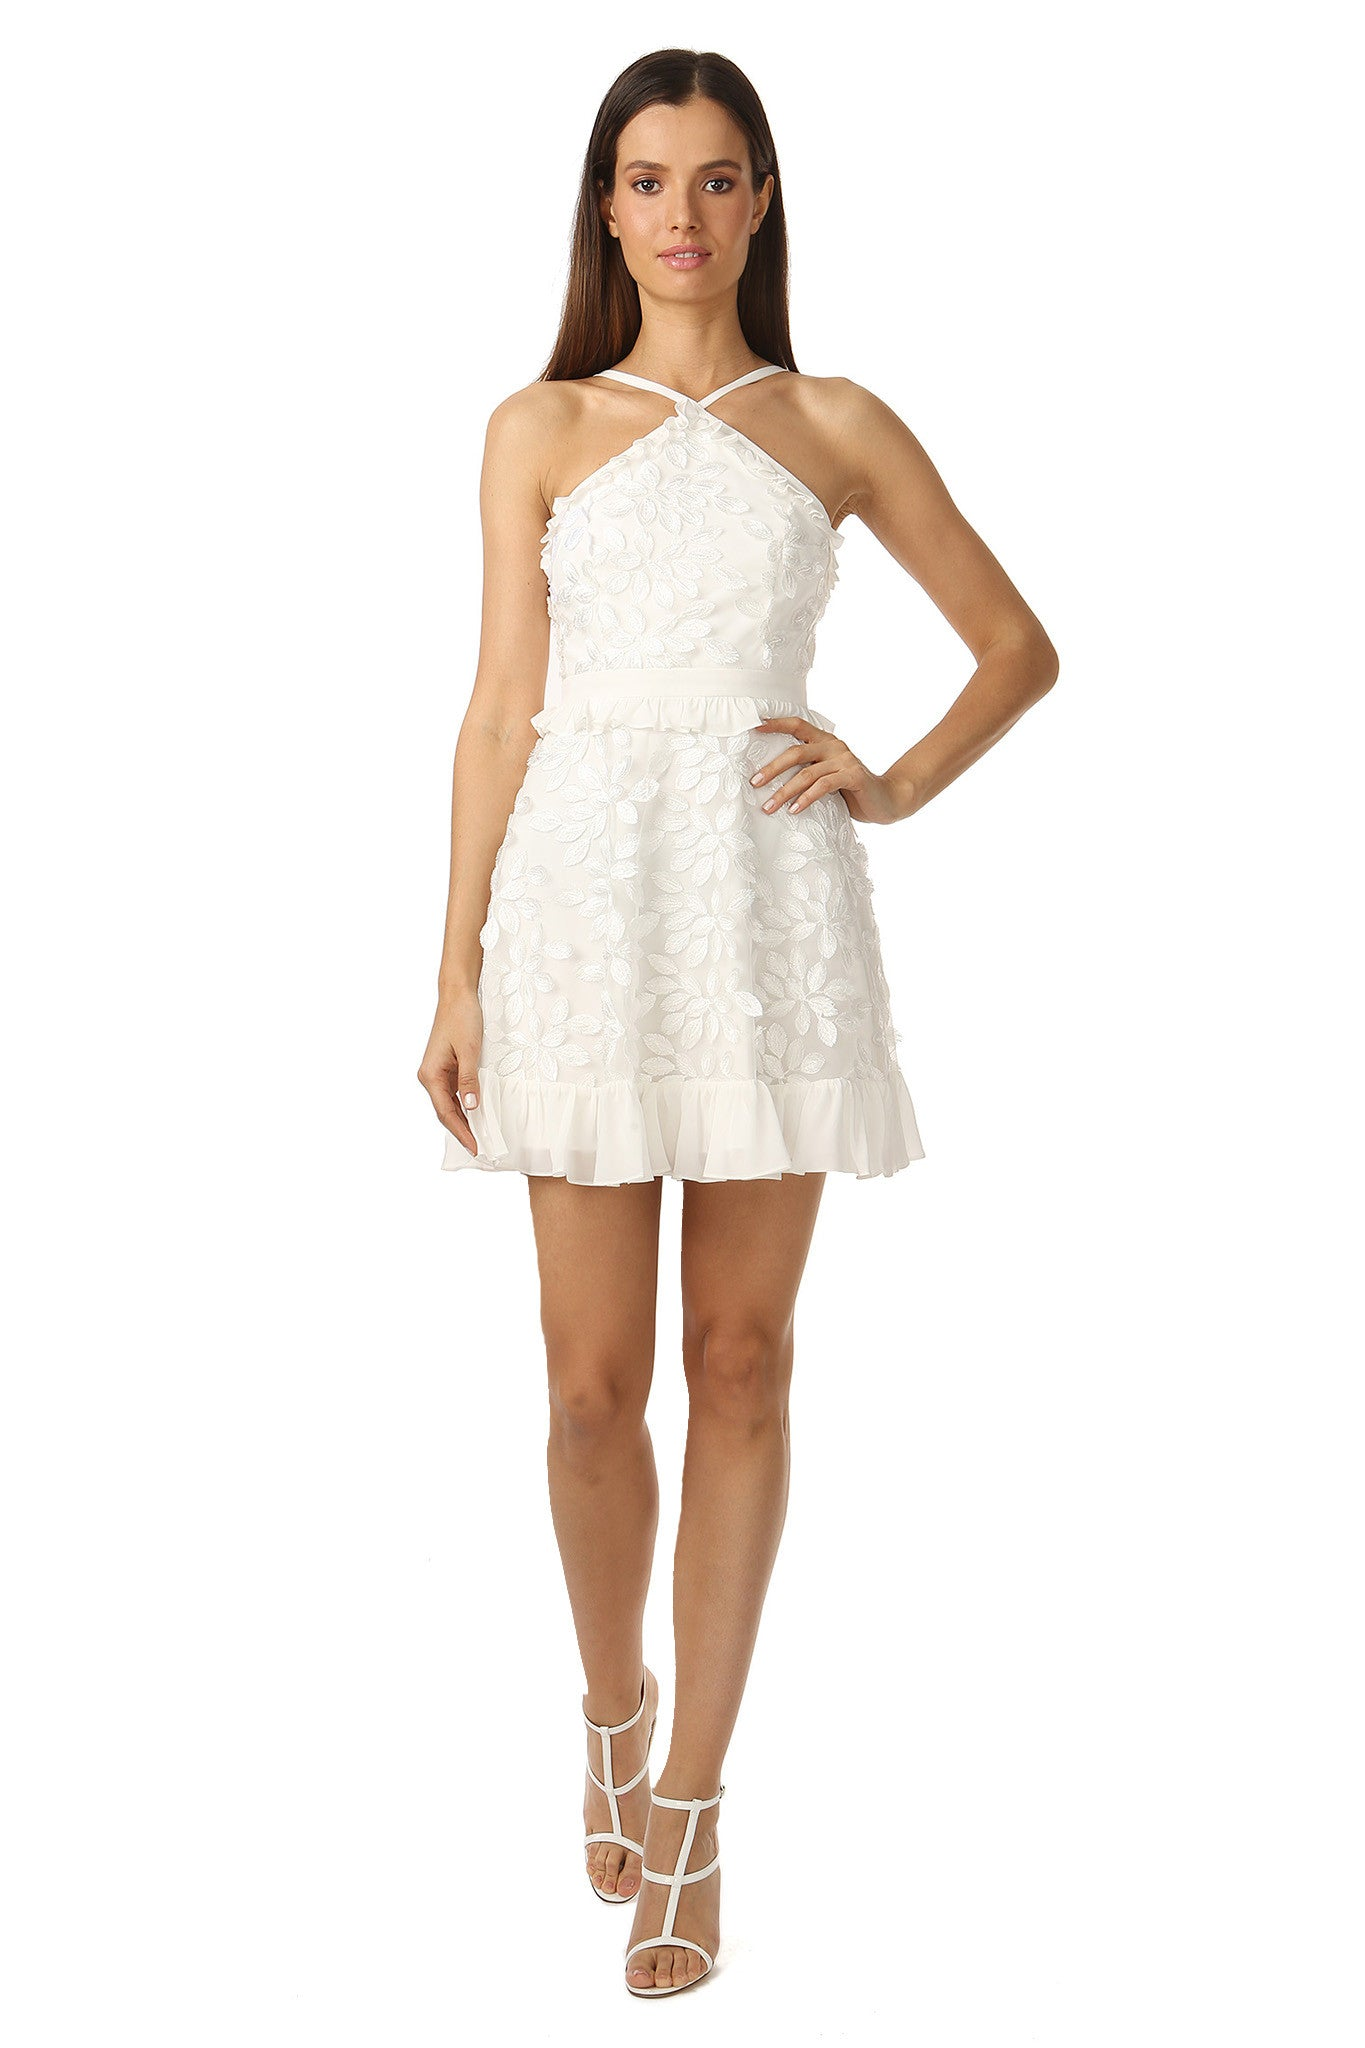 Jay Godfrey White Floral Midi Dress - Front View